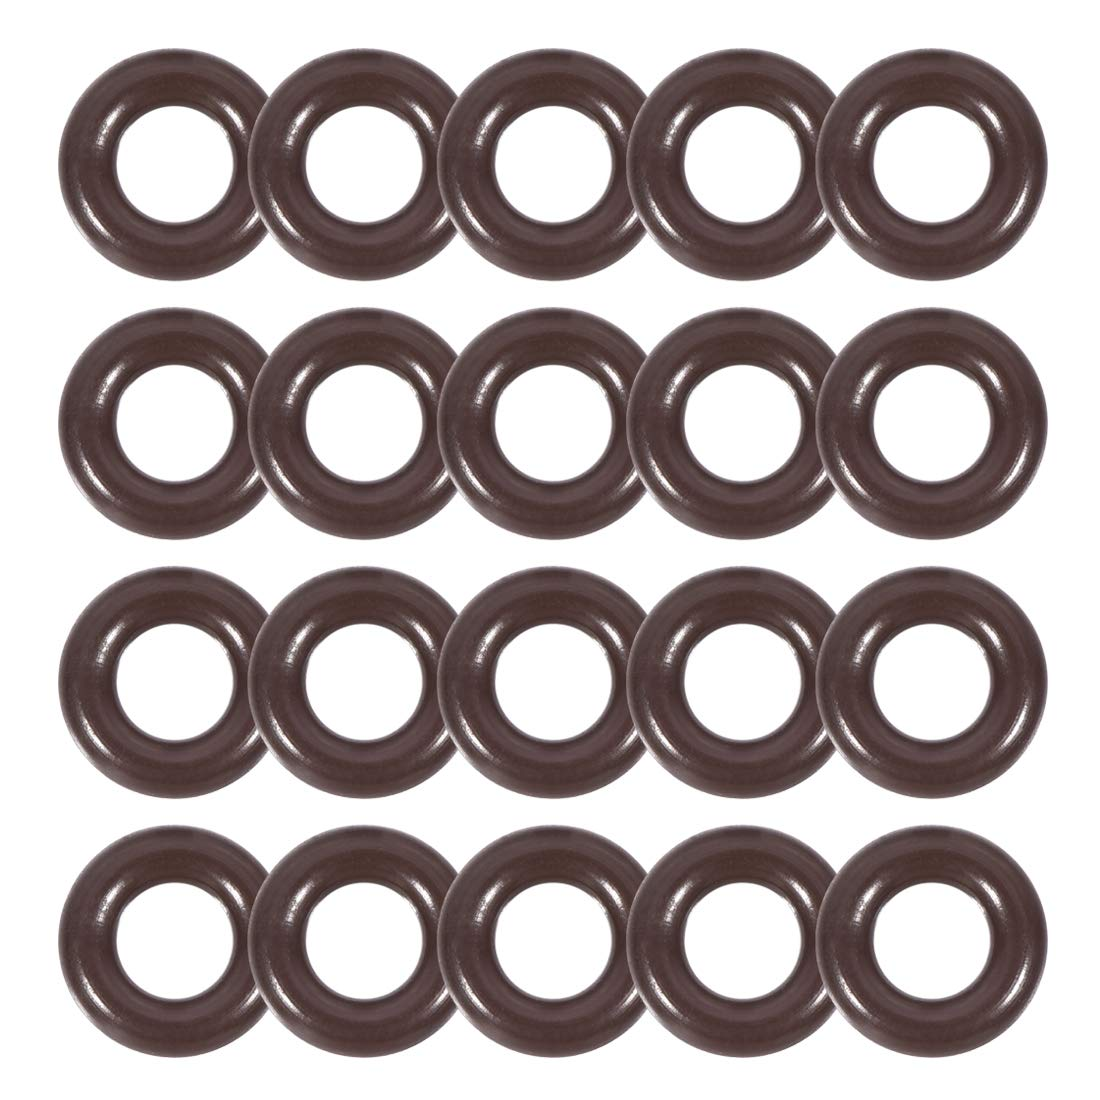 uxcell Fluorine Rubber O-Rings 7.6mm OD 4mm ID 1.8mm Width, Metric FKM Sealing Gasket, Pack of 20